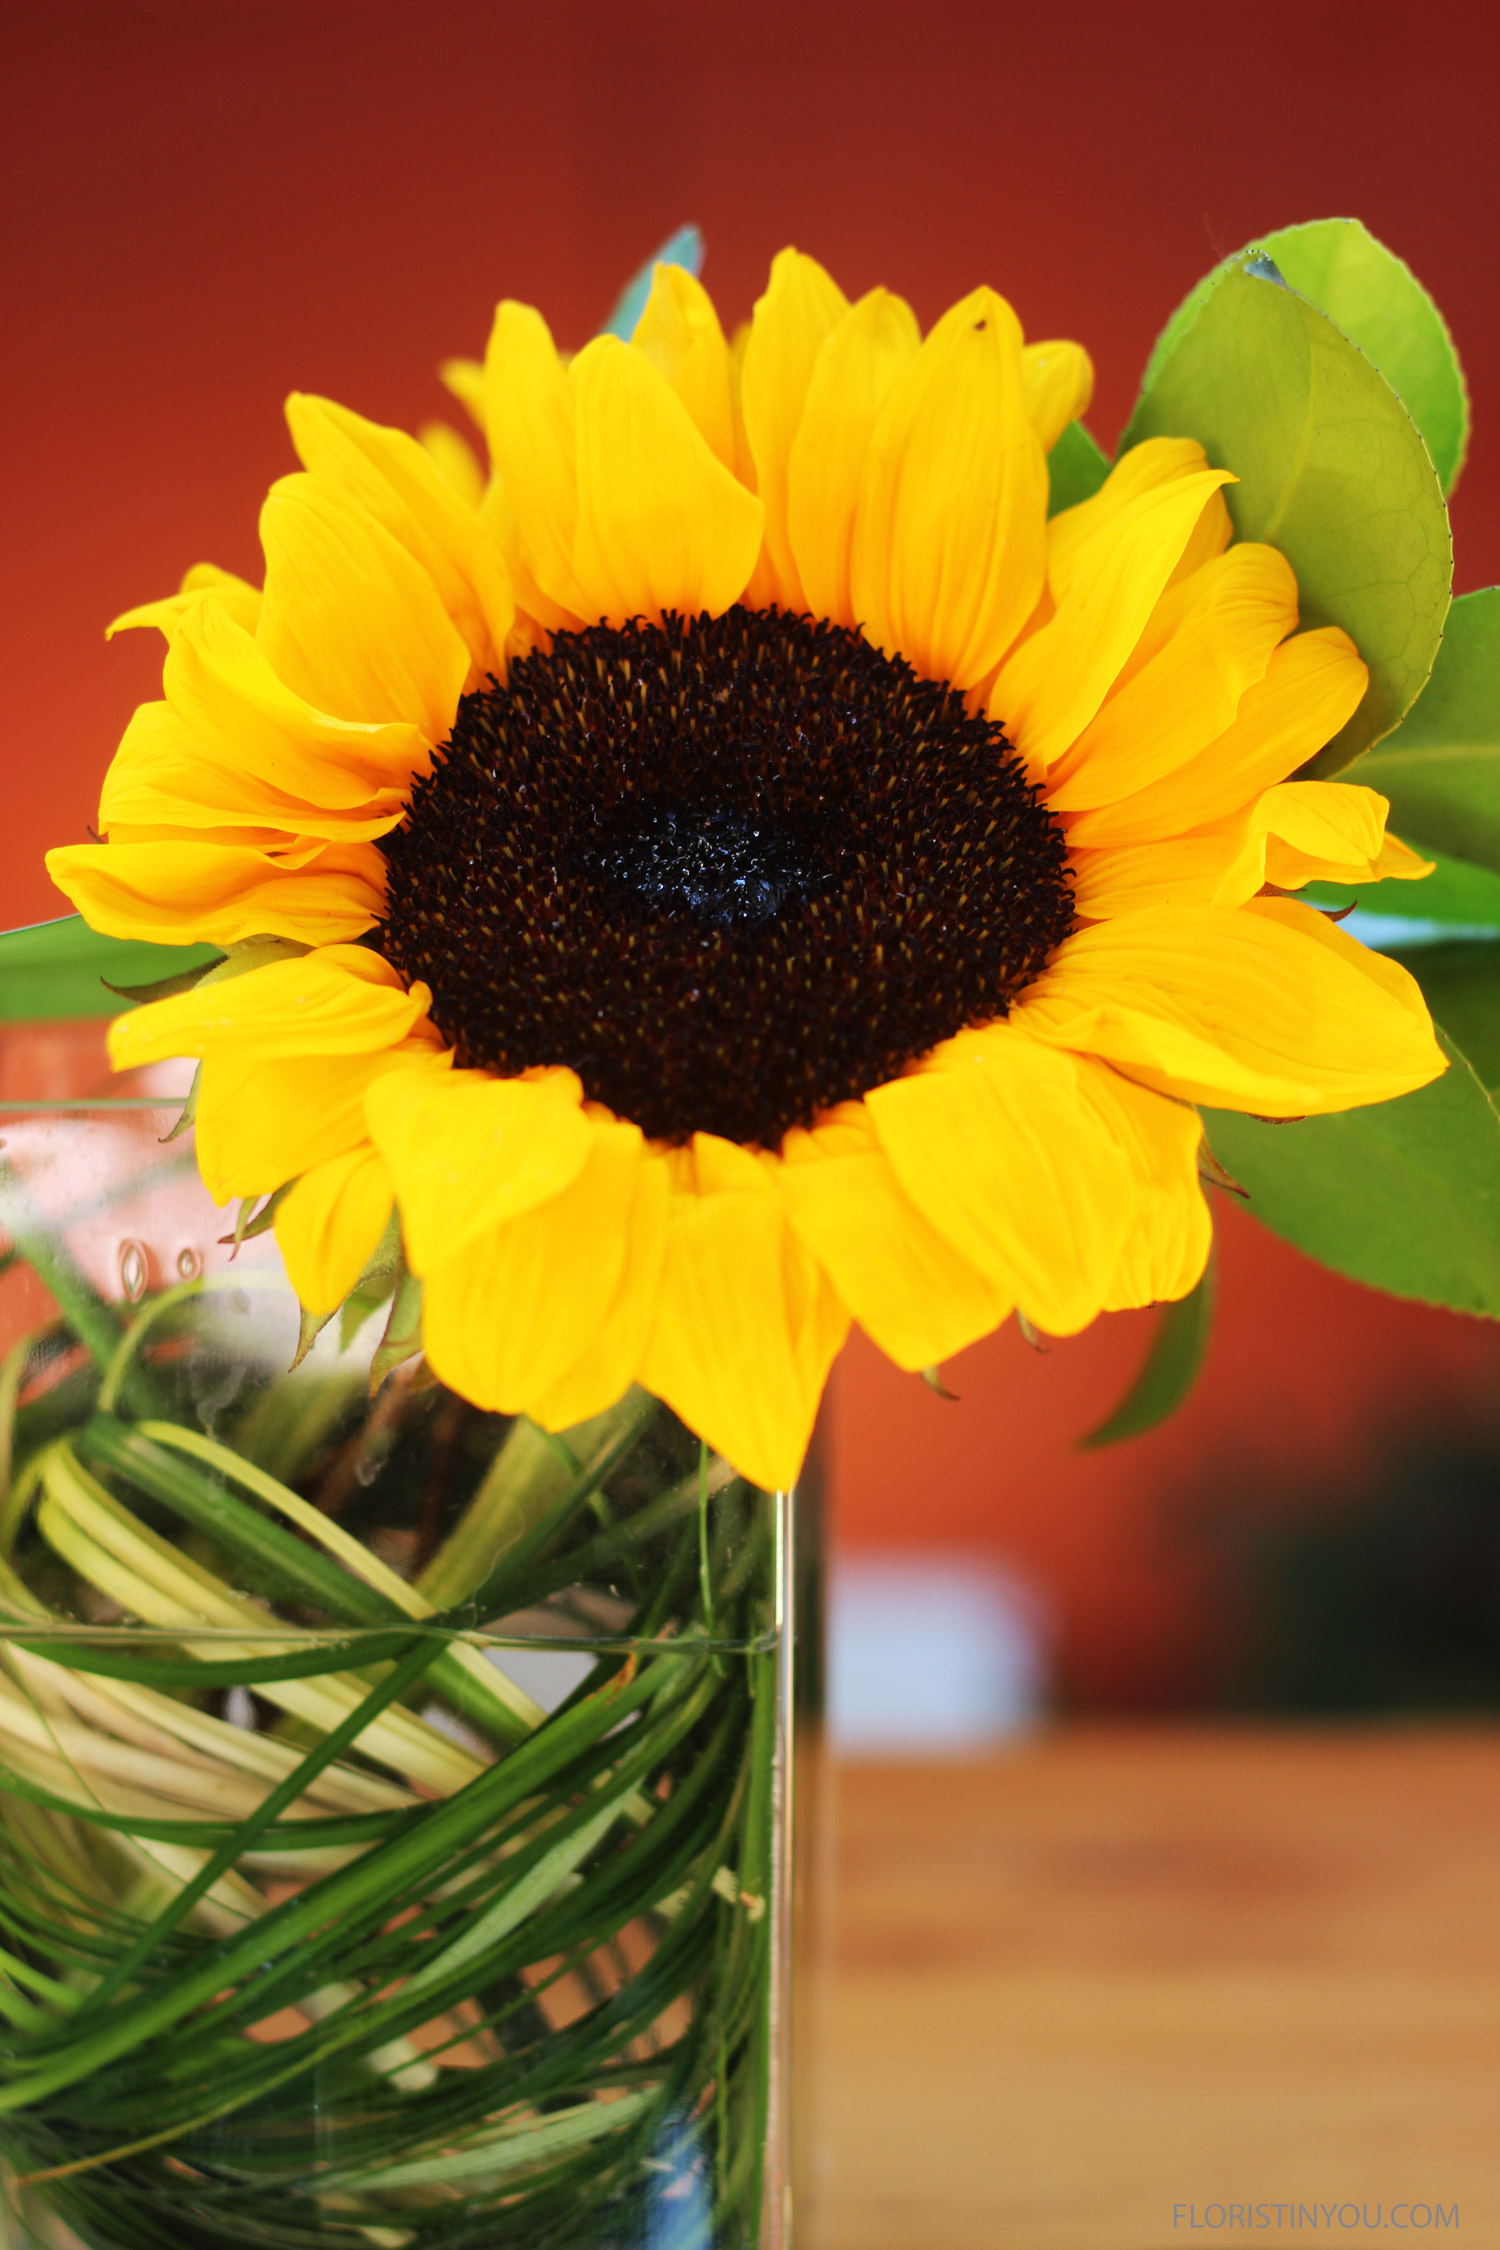 Here's a close up of the Sunflower.